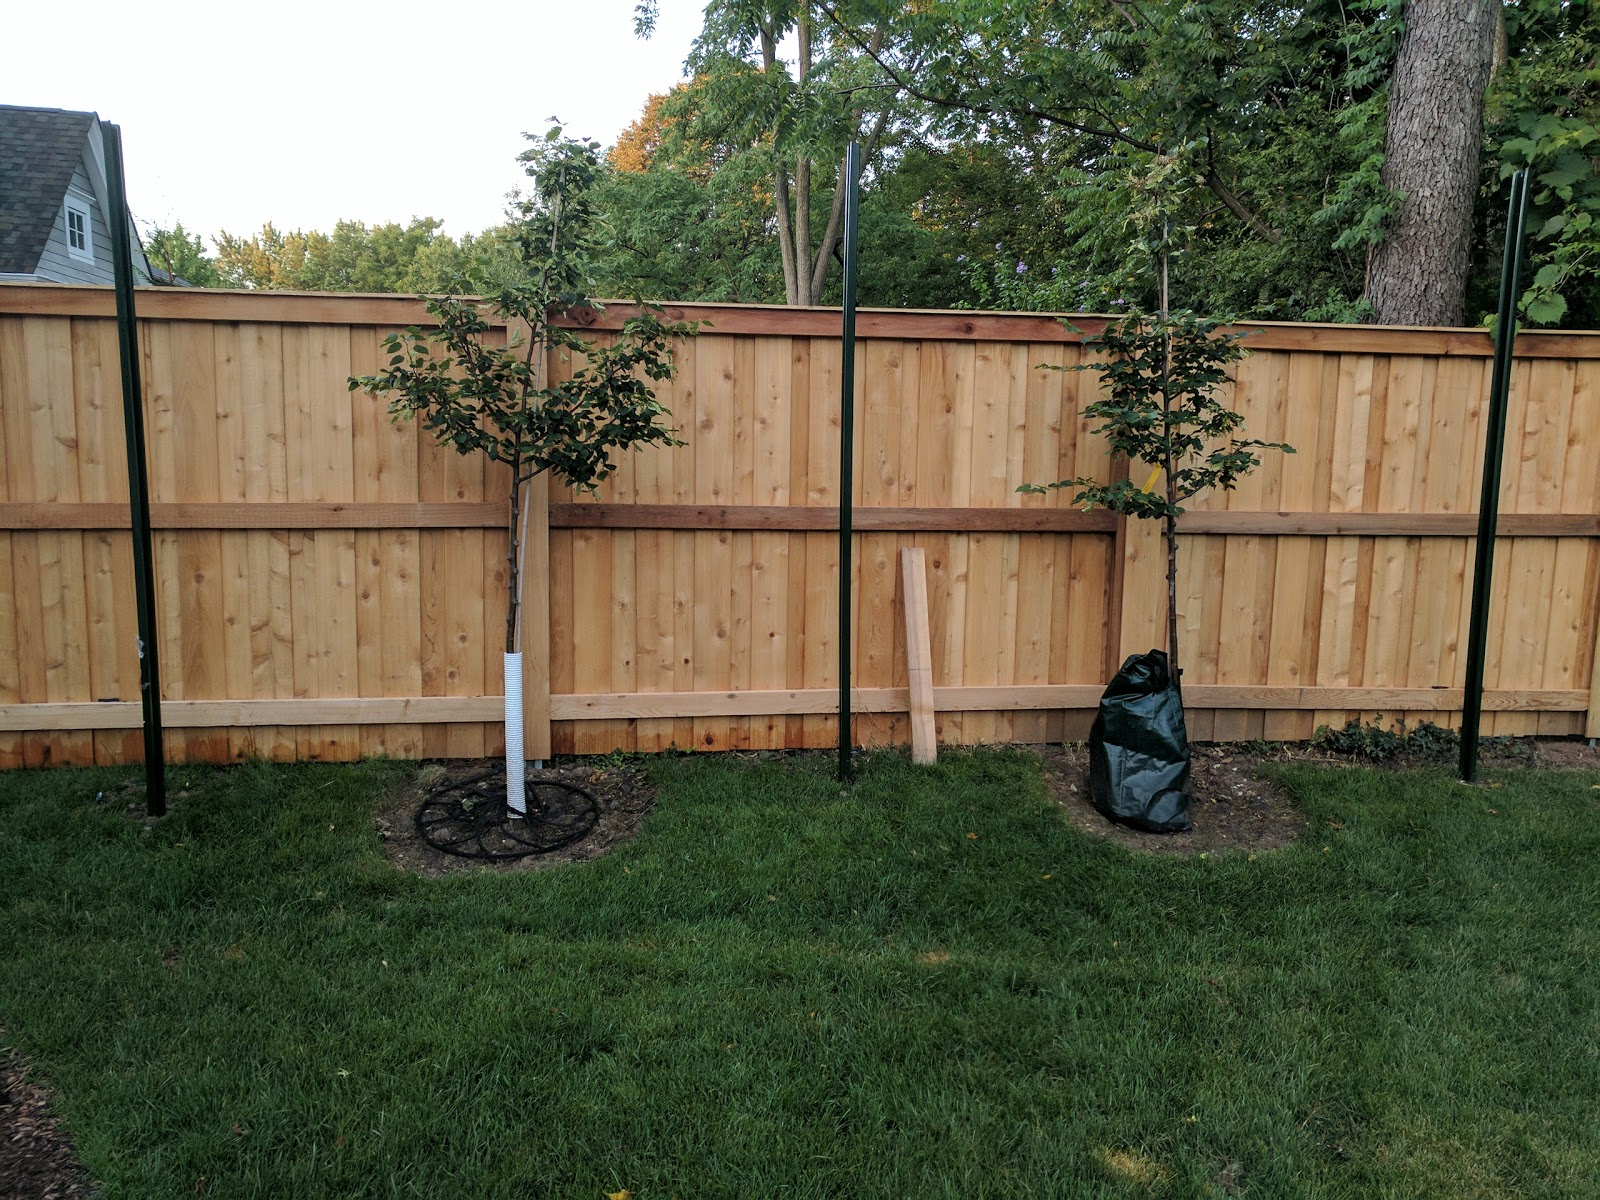 Posts Installed for Espalier Linden Trees